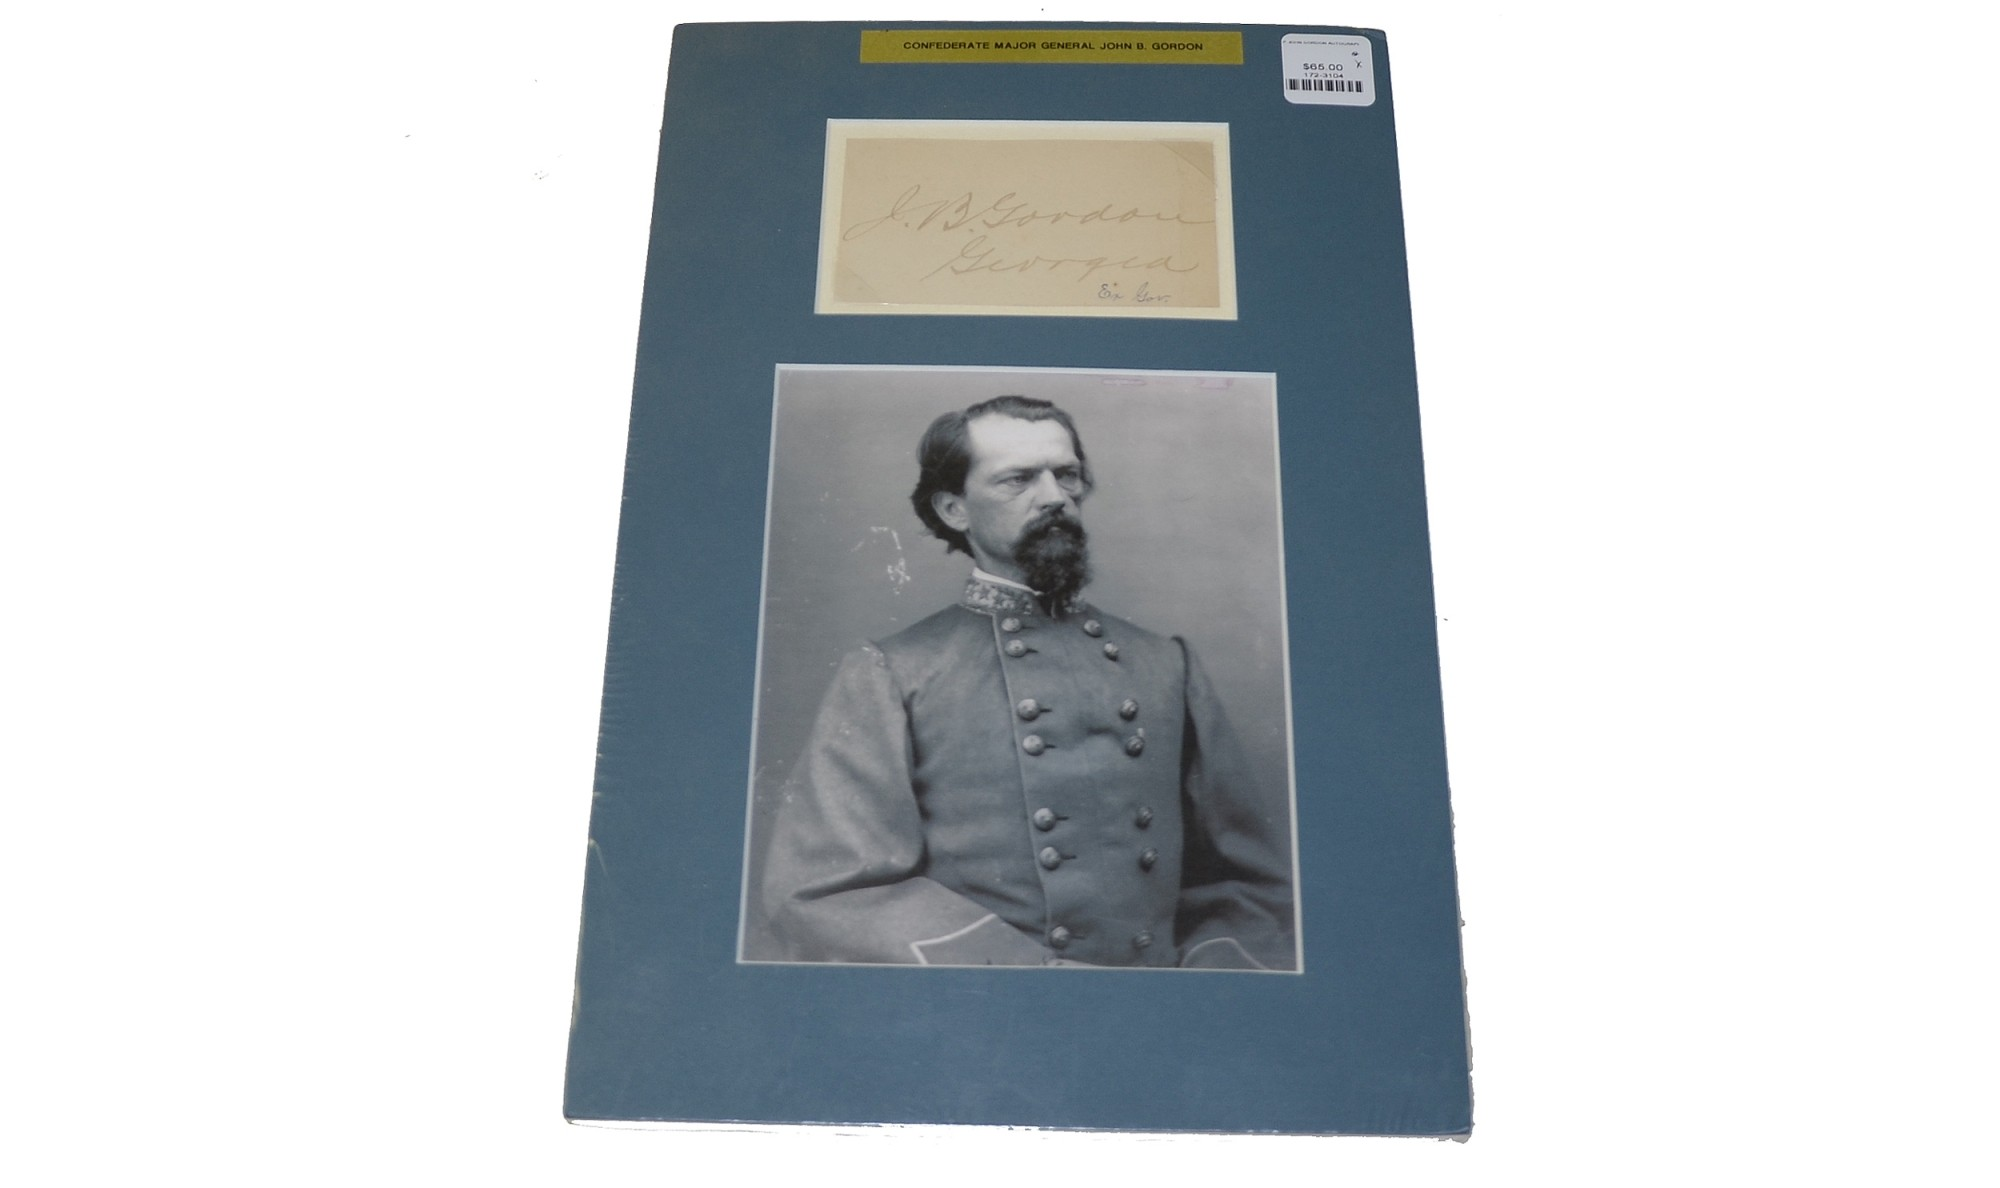 CLIPPED SIGNATURE OF CONFEDERATE GENERAL JOHN BROWN GORDON